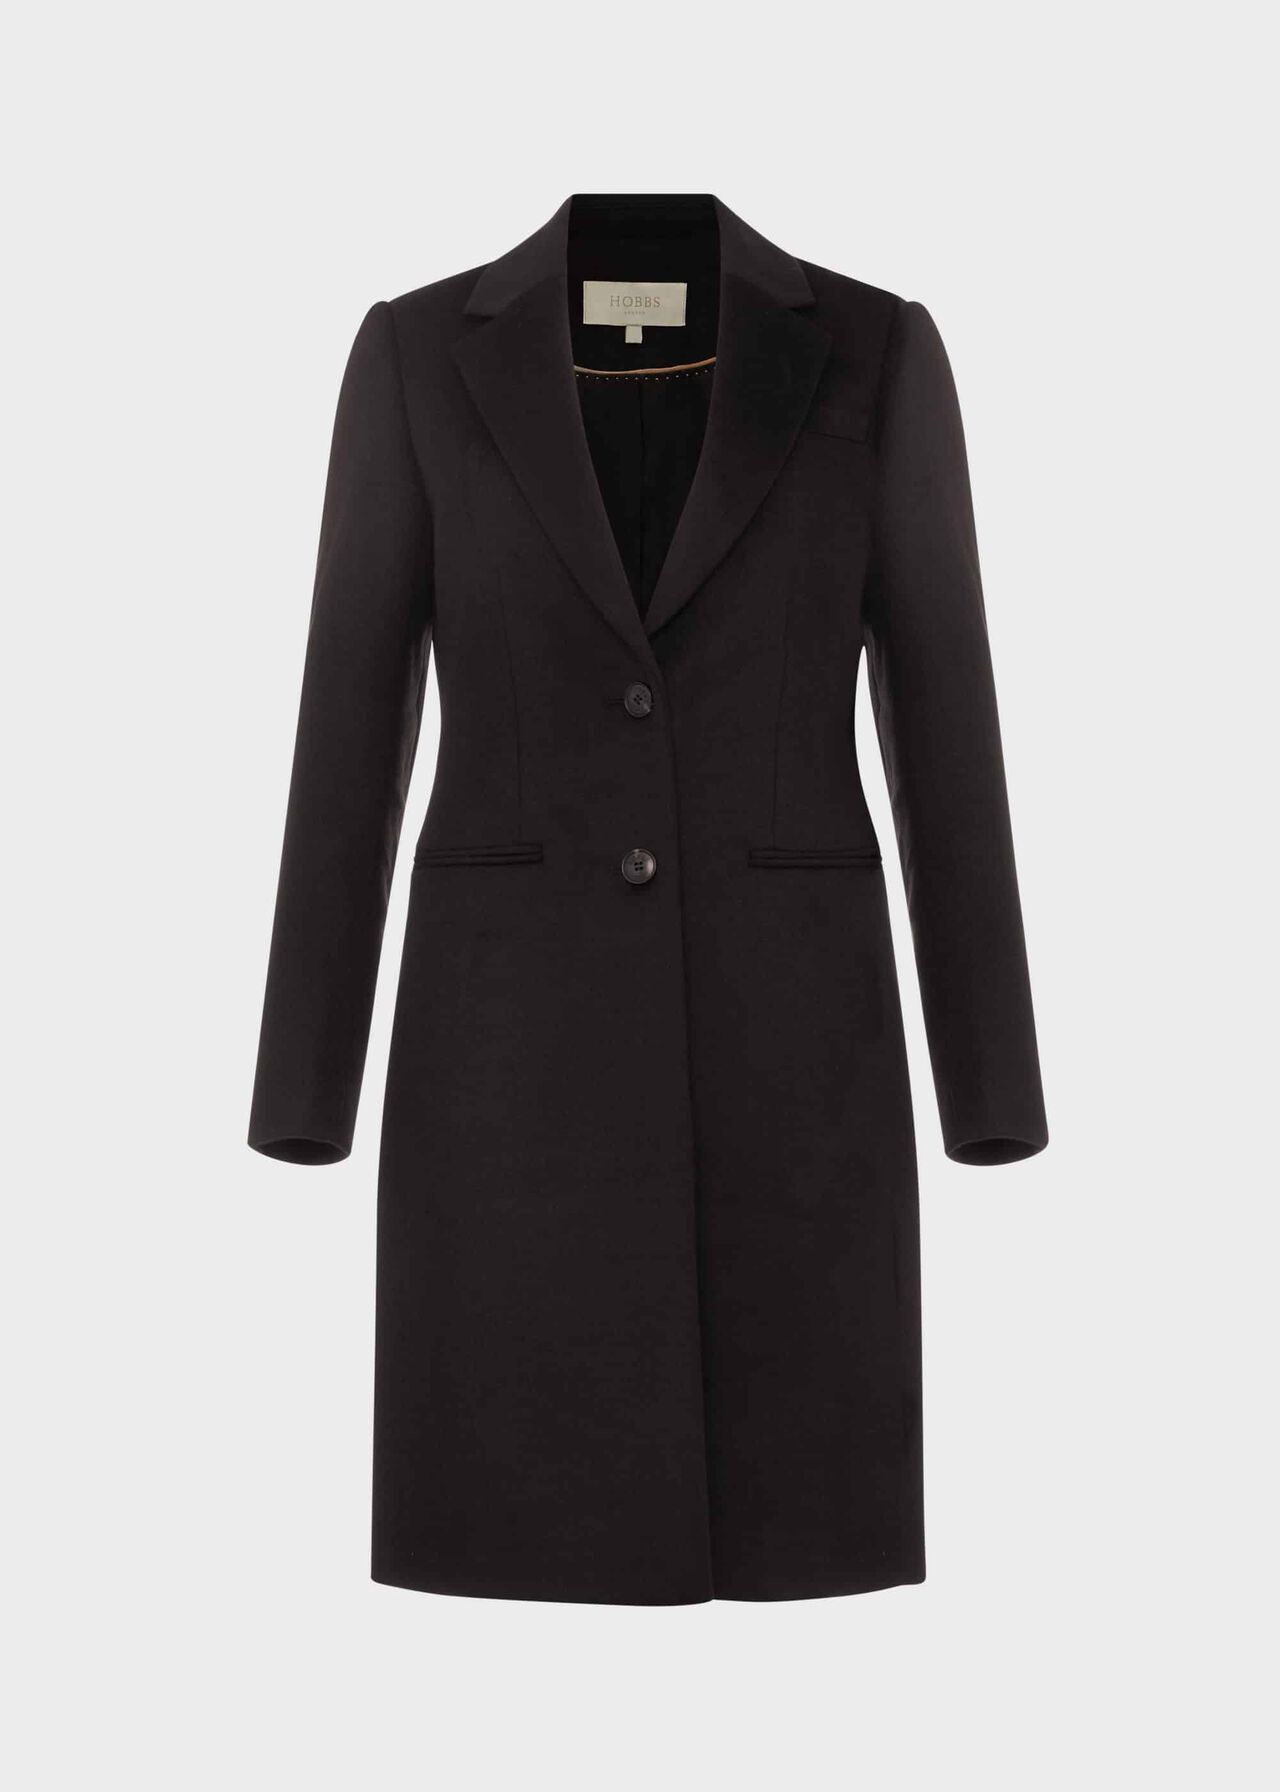 Petite Tilda Wool Coat Black